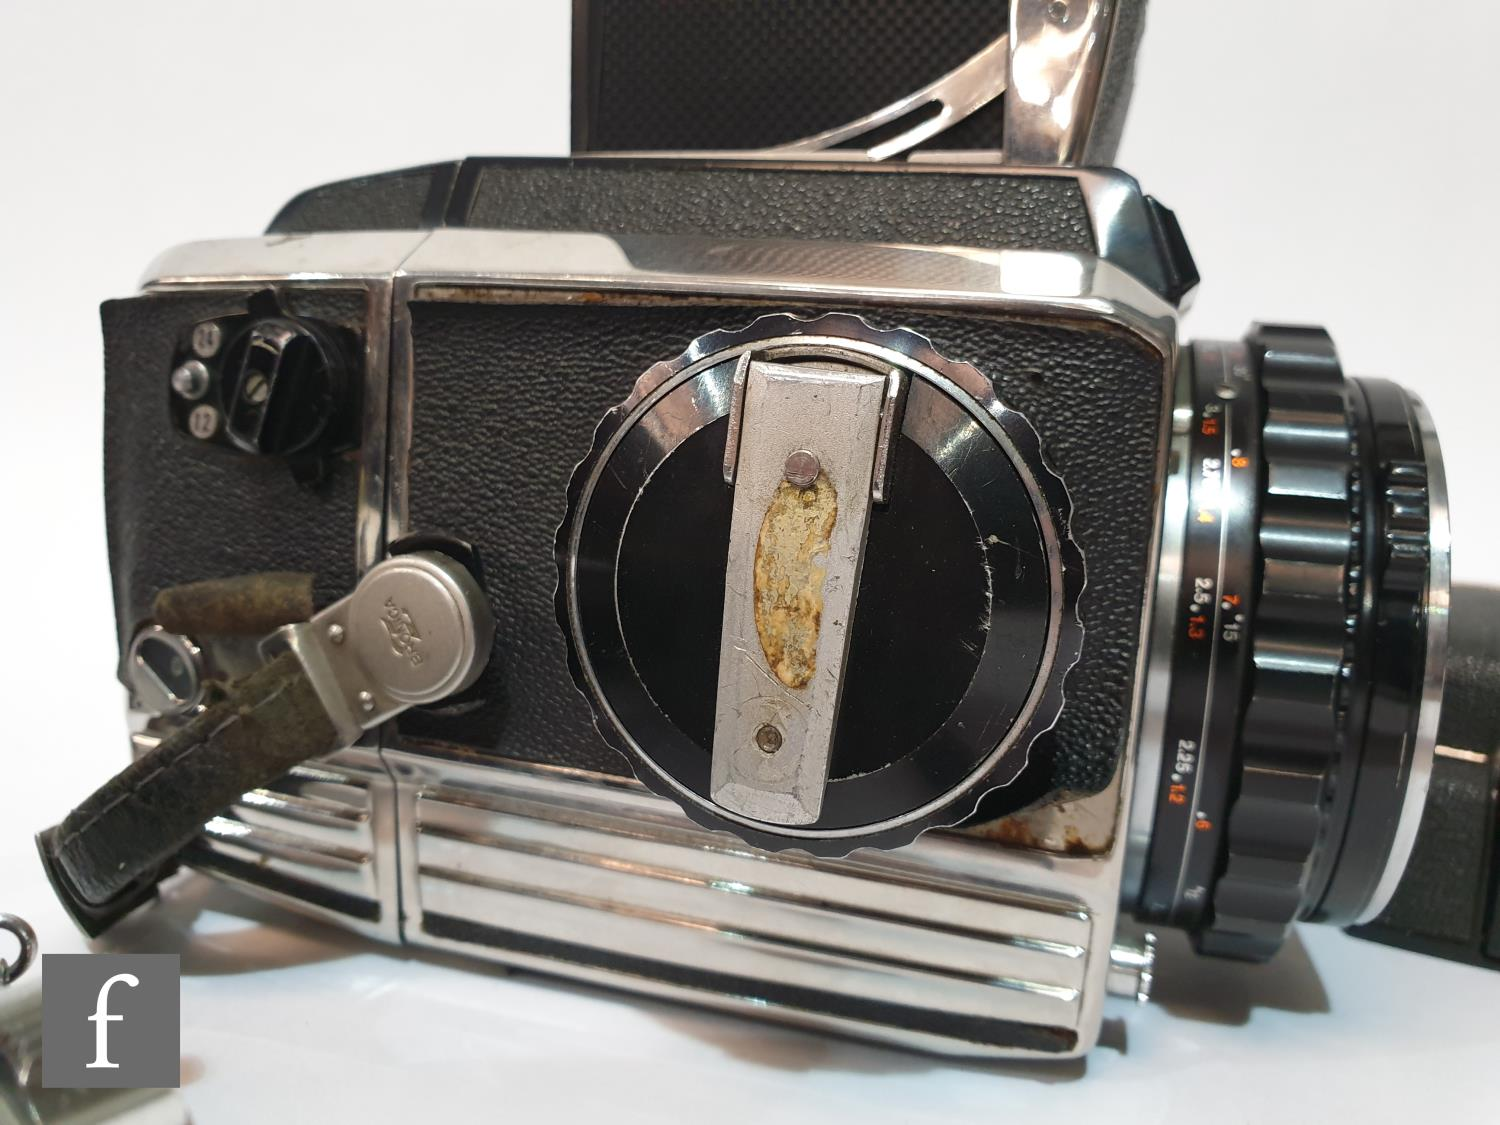 A Zenza Bronica S2 medium format camera outfit, circa 1965, comprising body serial number 75237, - Image 2 of 3